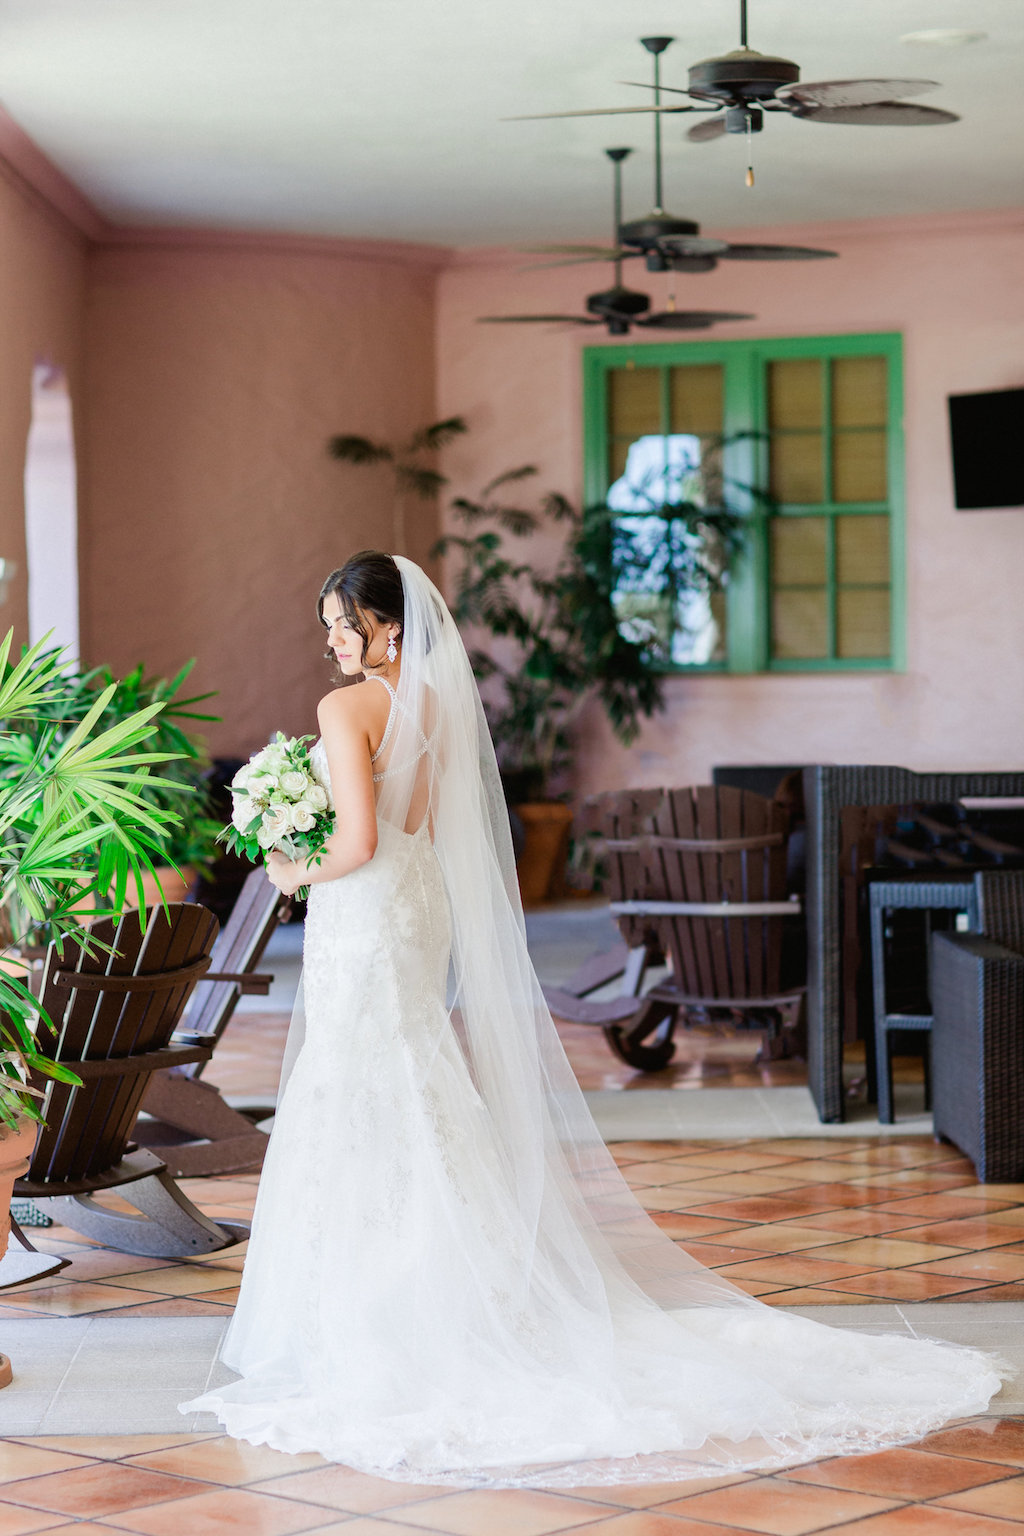 Bridal Wedding Portrait in High Halter Lace and Rhinestone Bodice Wedding Dress, Strappy Open Back Wedding Dress and Cathedral Length Veil   Tampa Hair Artist Femme Akoi   St. Petersburg Photographer Ailyn La Torre Photography